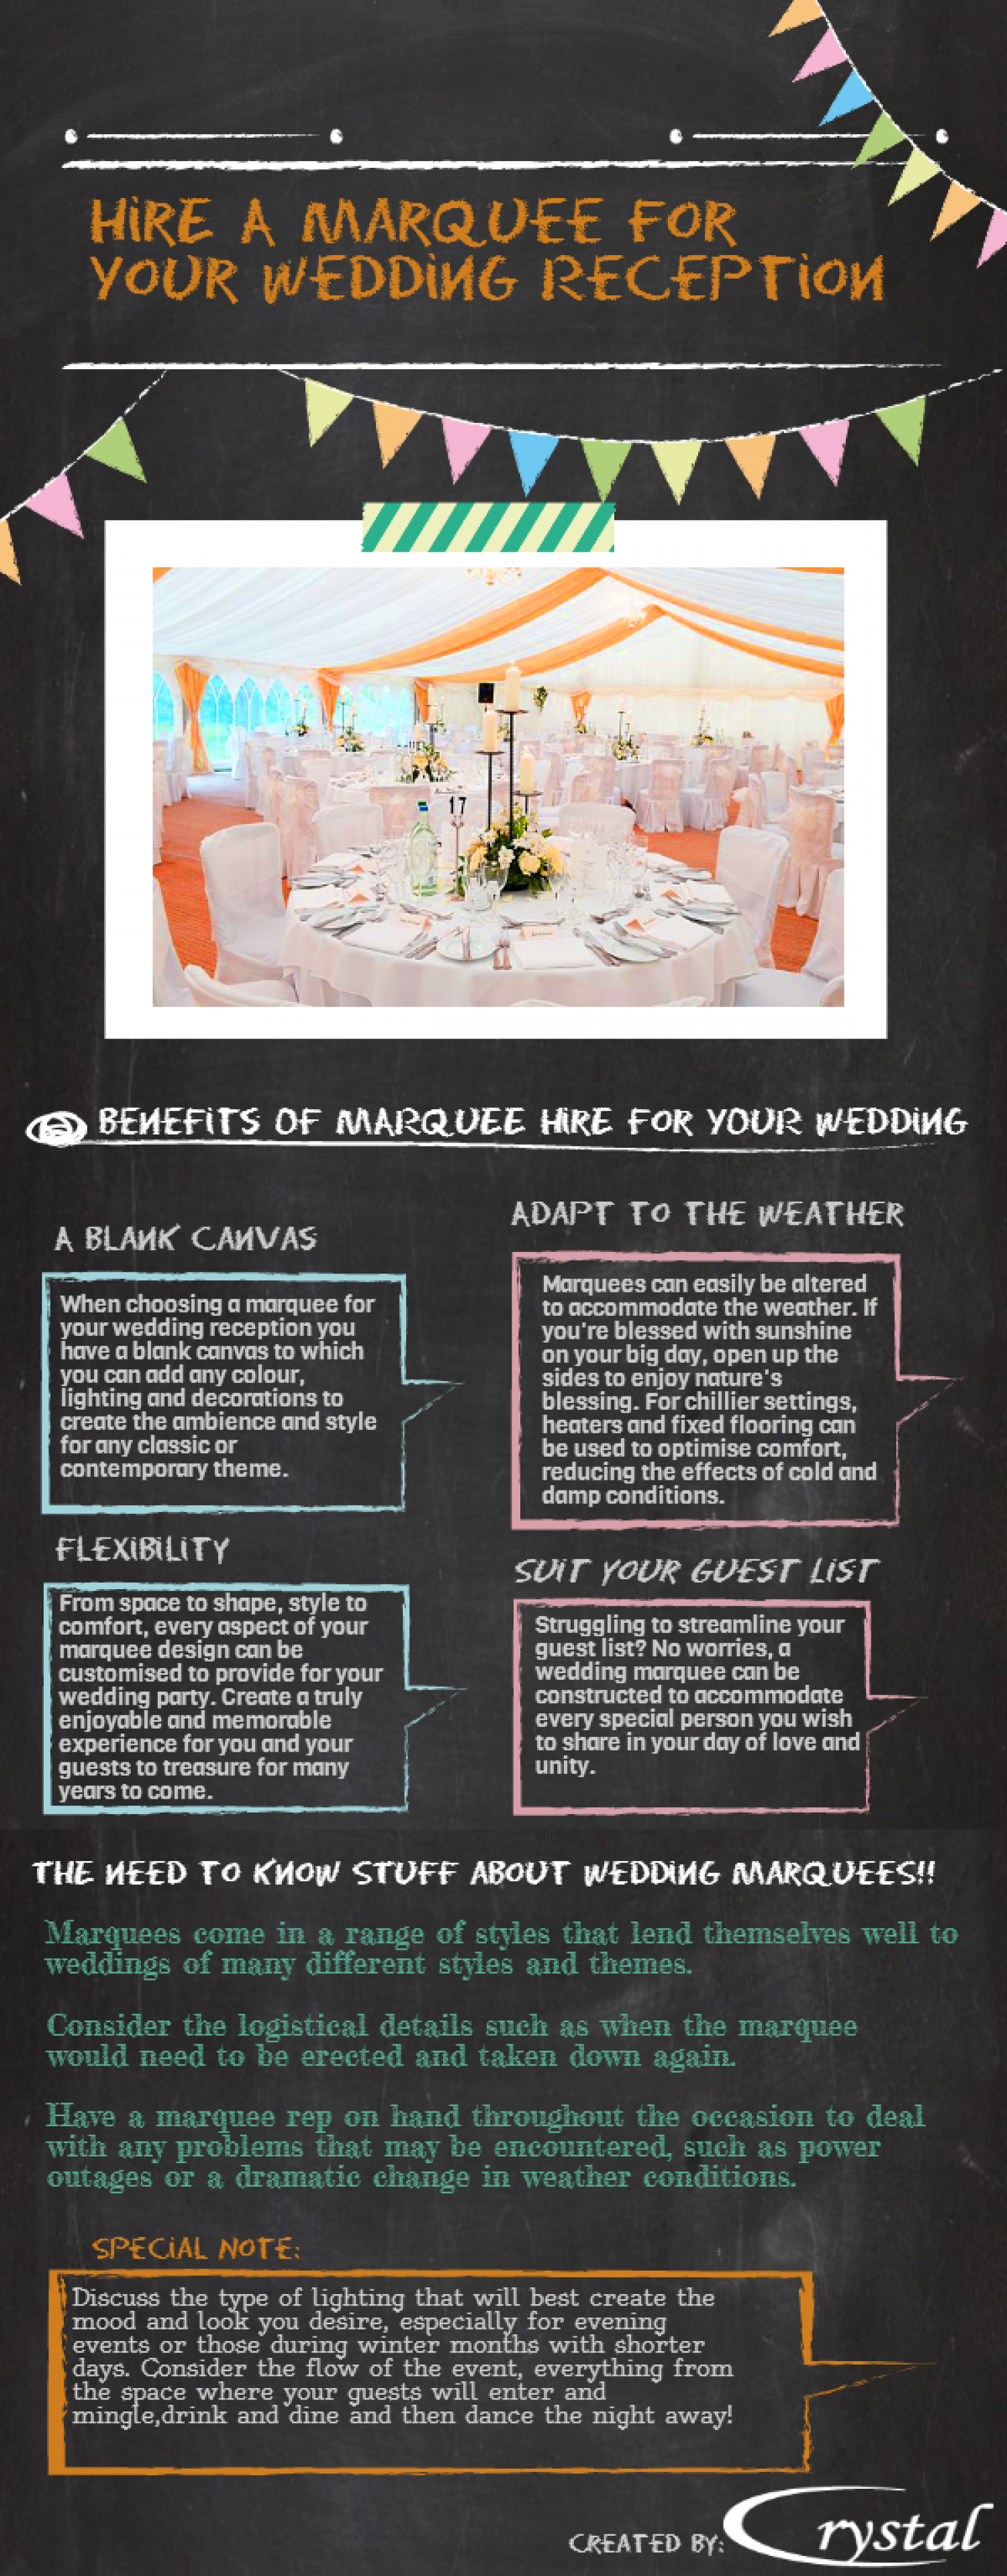 HIRE A MARQUEE FOR YOUR WEDDING RECEPTION Infographic